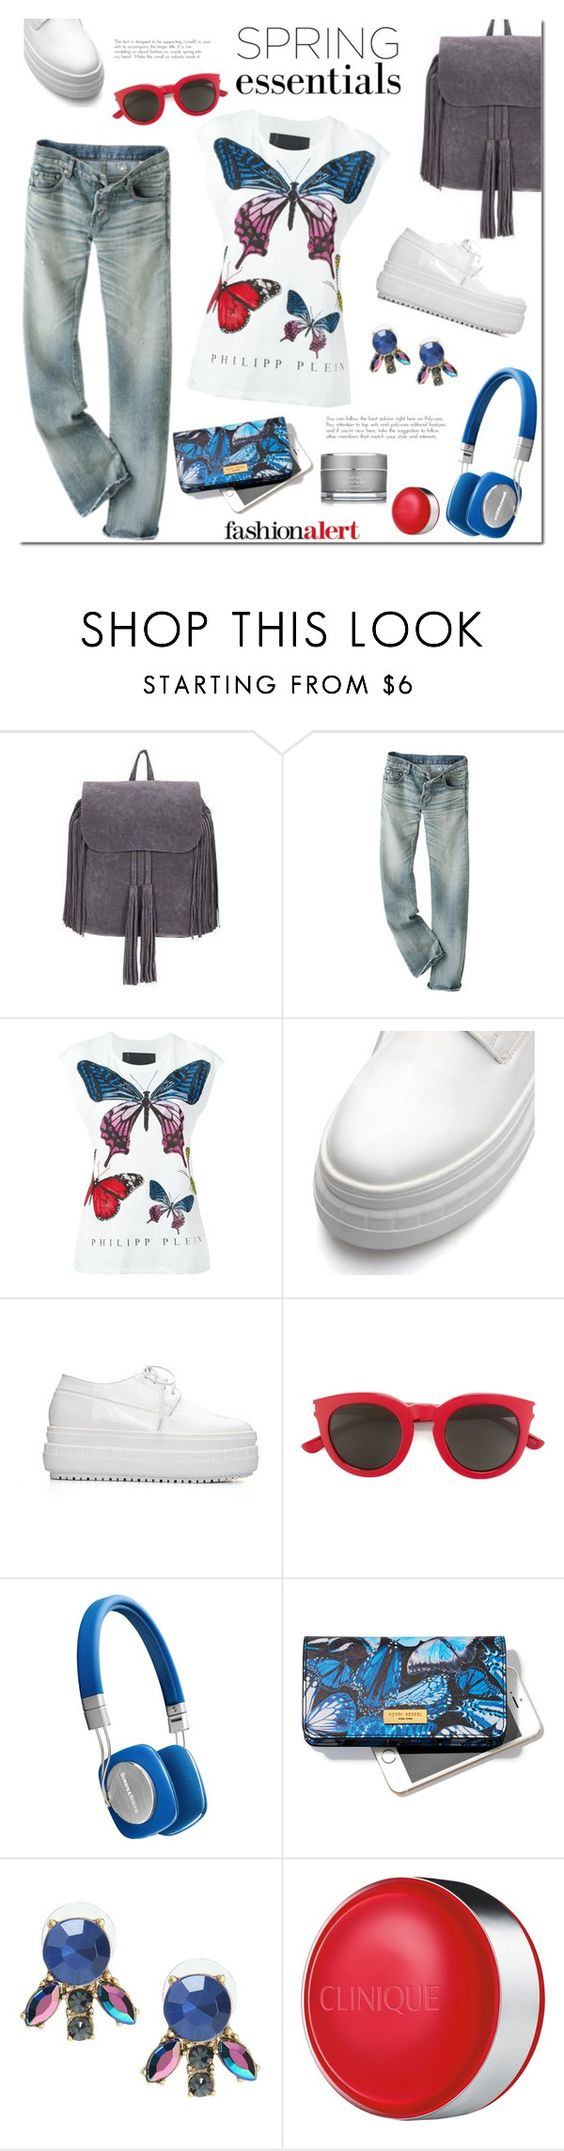 """""""Spring and butterflyes"""" by mada-malureanu ❤ liked on Polyvore featuring Philipp Plein, Yves Saint Laurent, Bowers & Wilkins, Henri Bendel, Clinique and Sarah Chapman"""